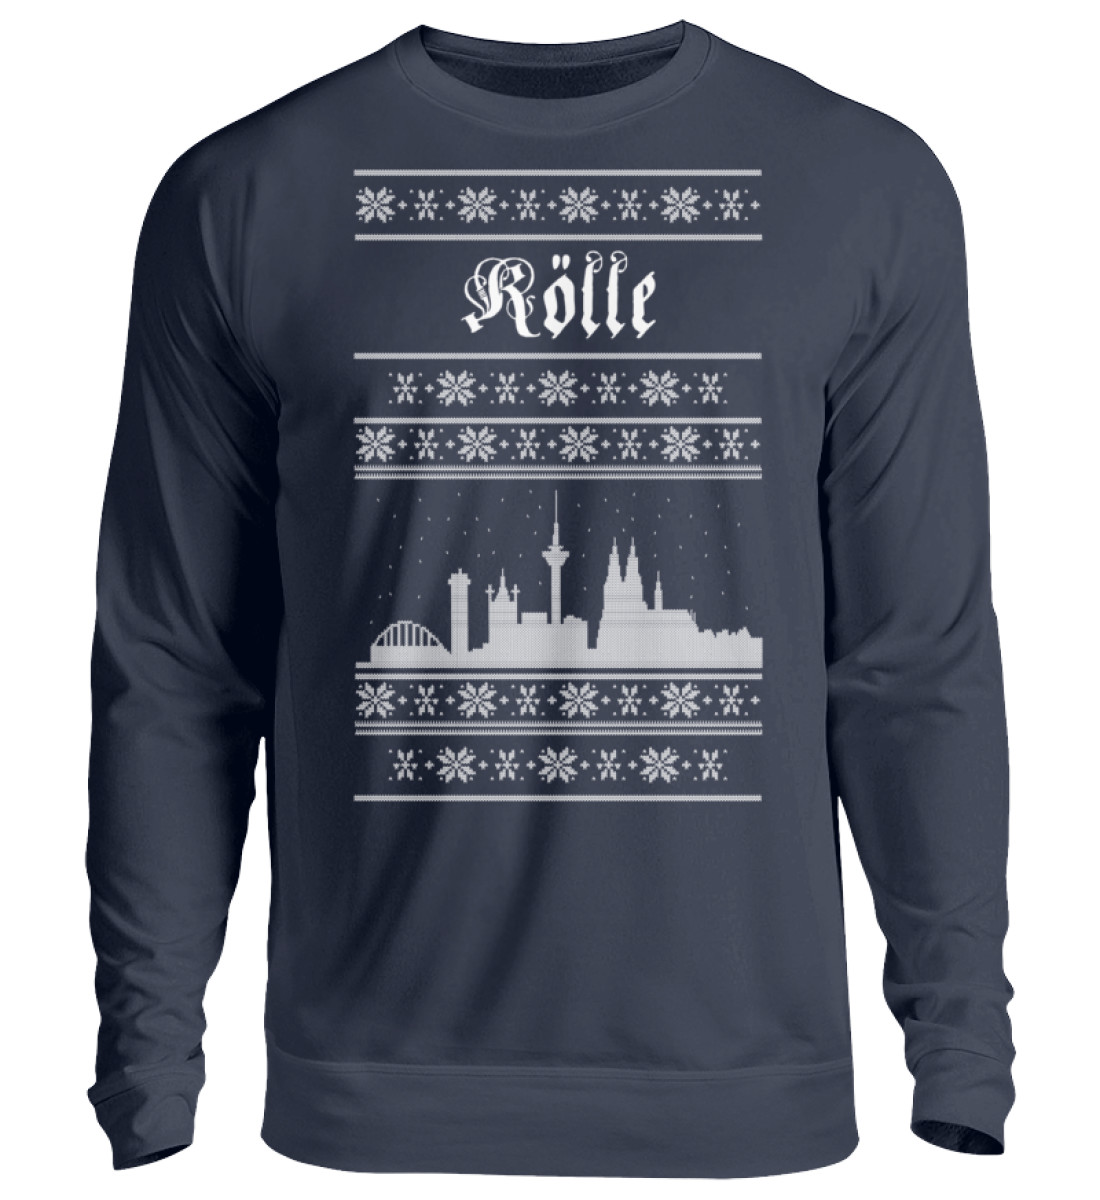 Kölle Ugly Christmas Sweater - Unisex Pullover-1698